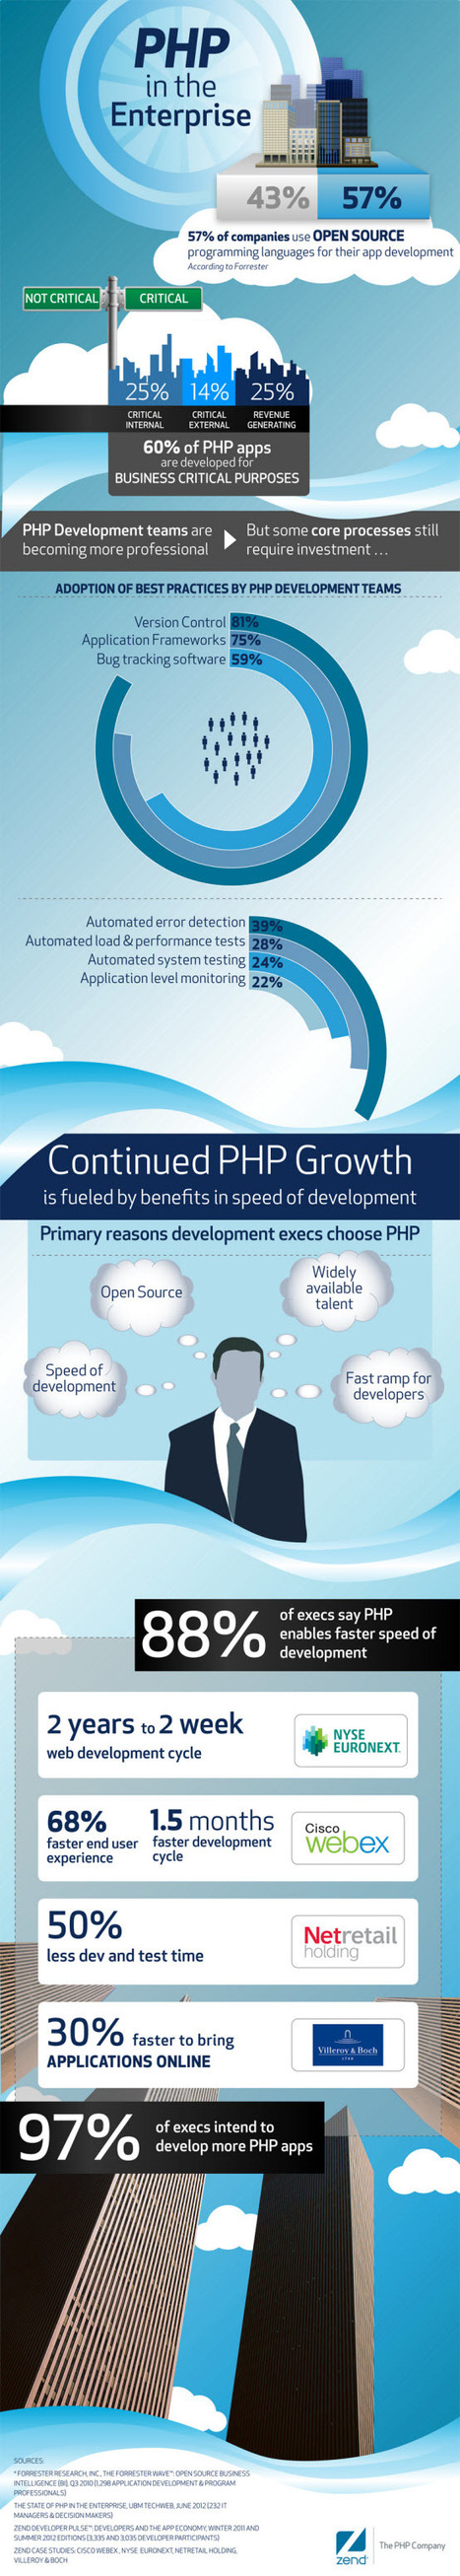 Is PHP set for Enterprise Level? Know Through Data Visualization | Infographic | Scoop.it